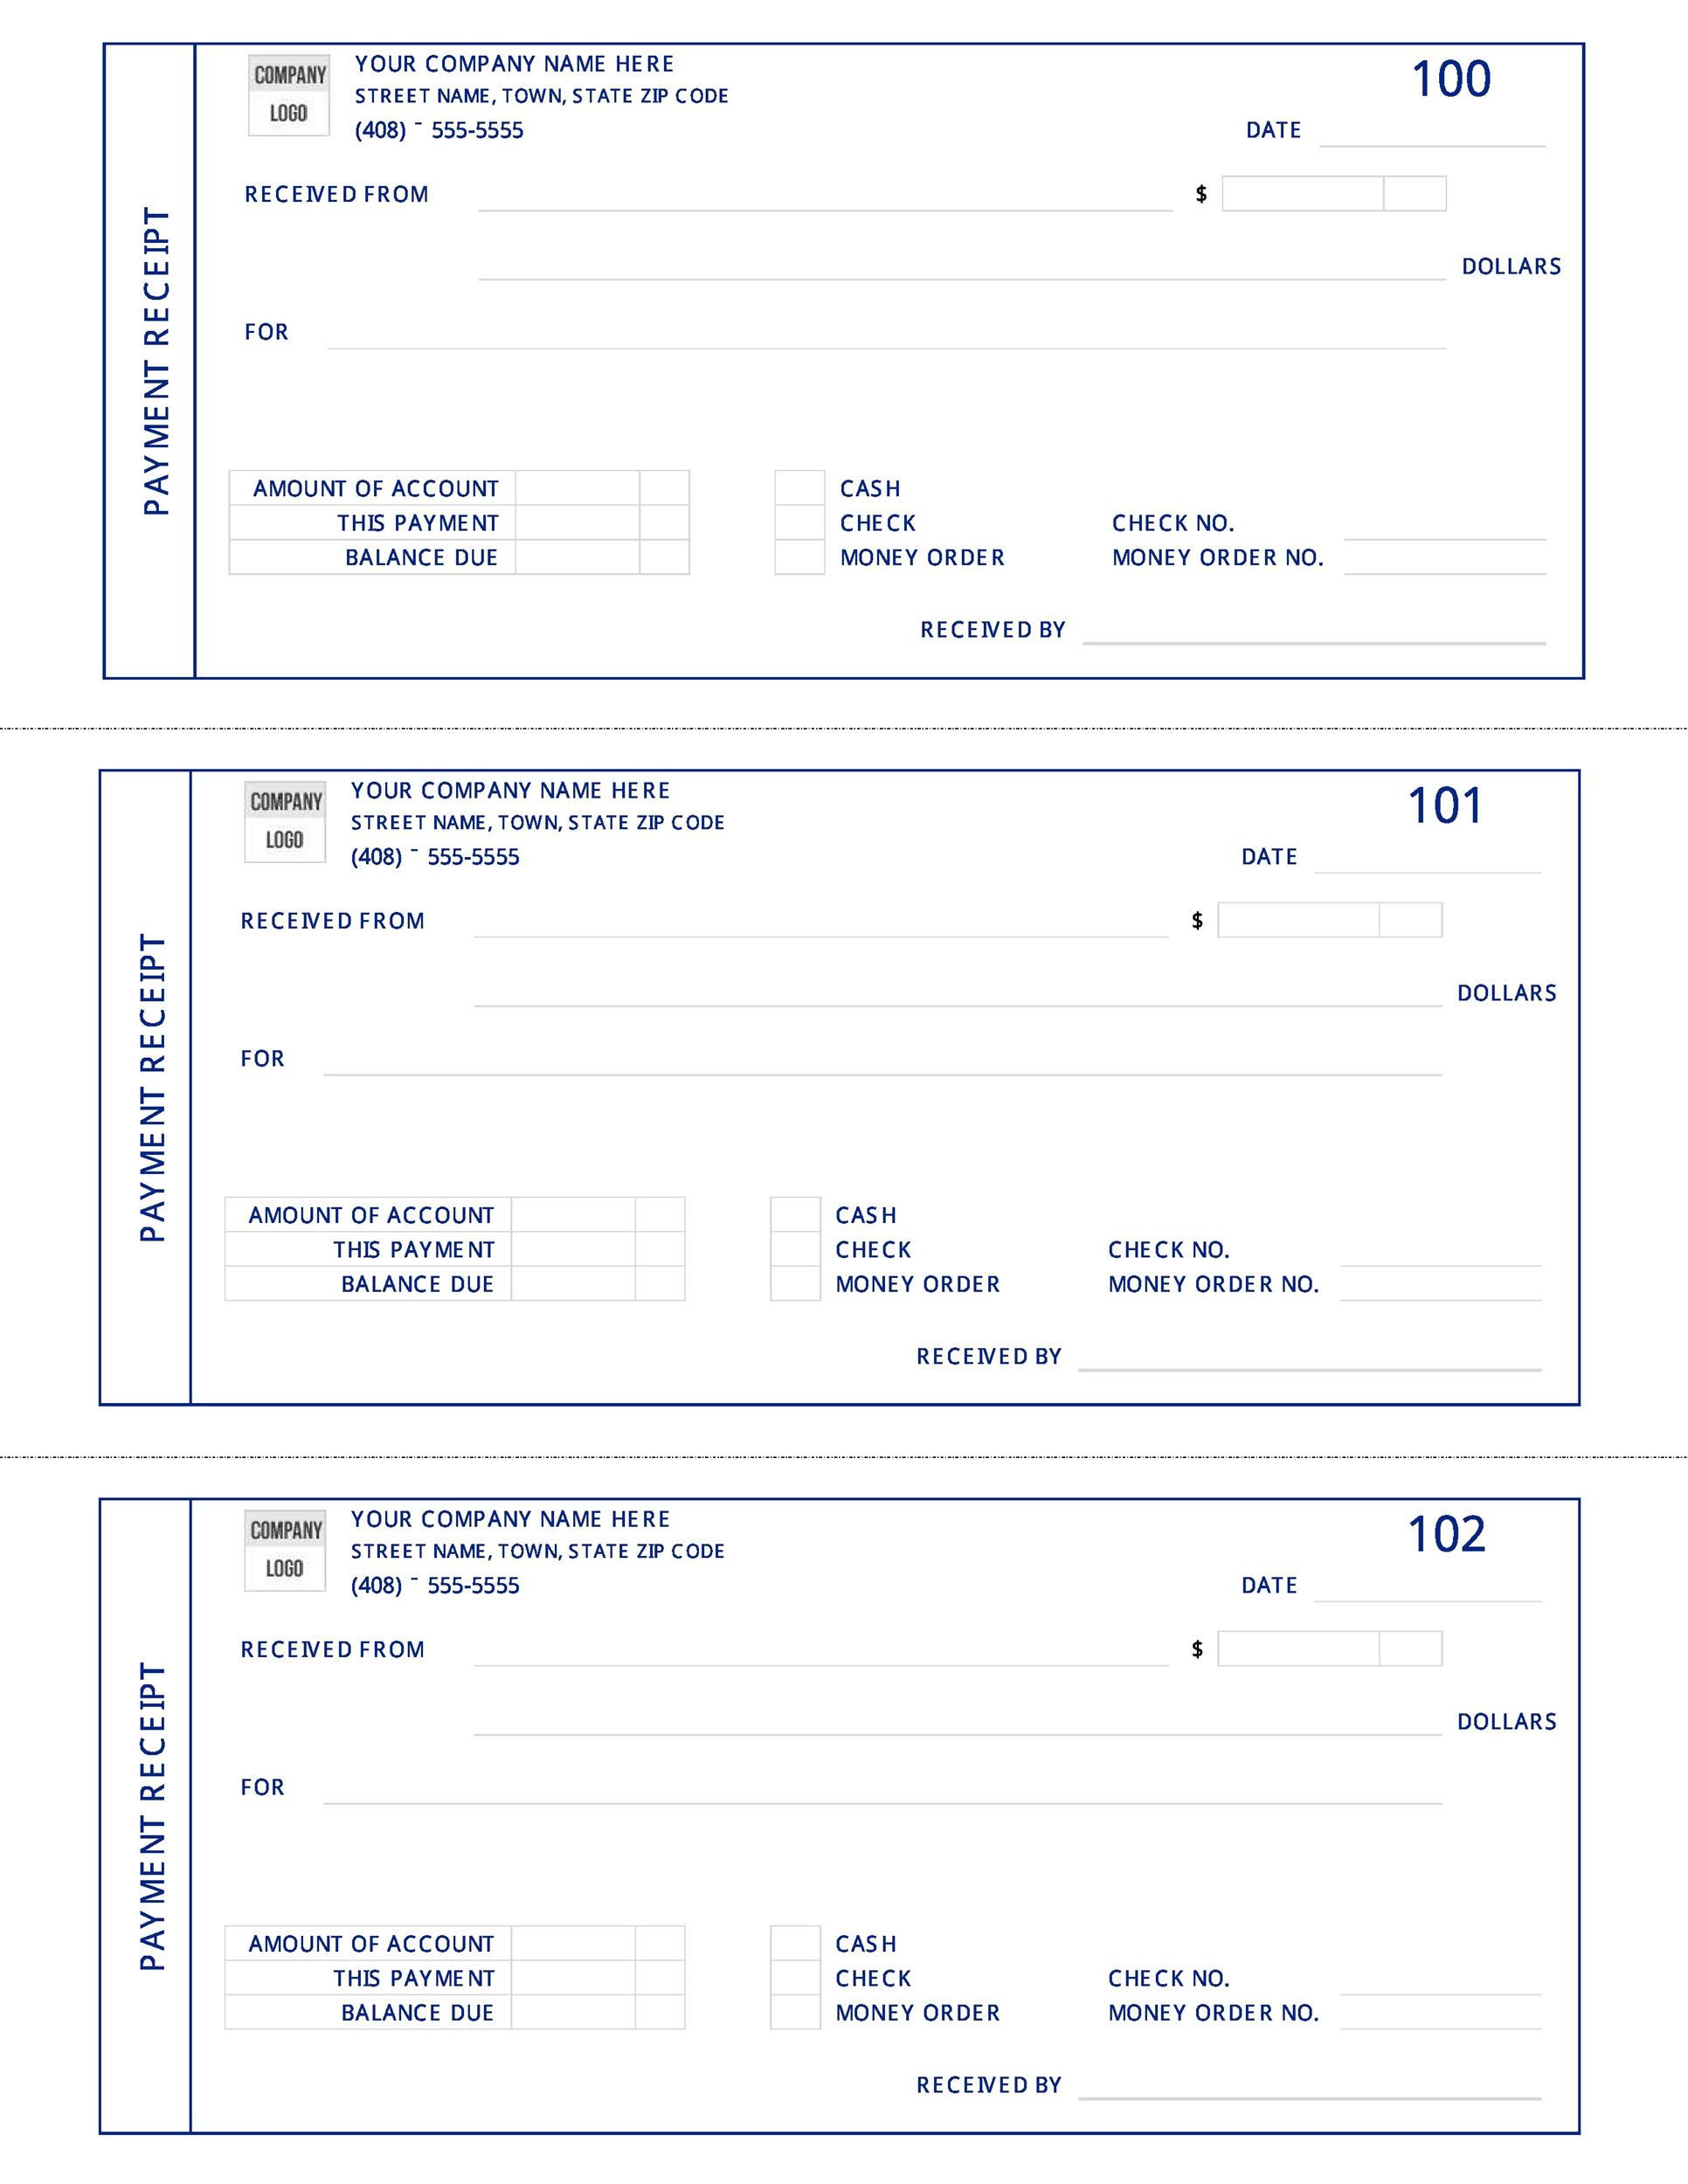 50 Free Receipt Templates Cash Sales Donation Taxi – Payment Receipt Book